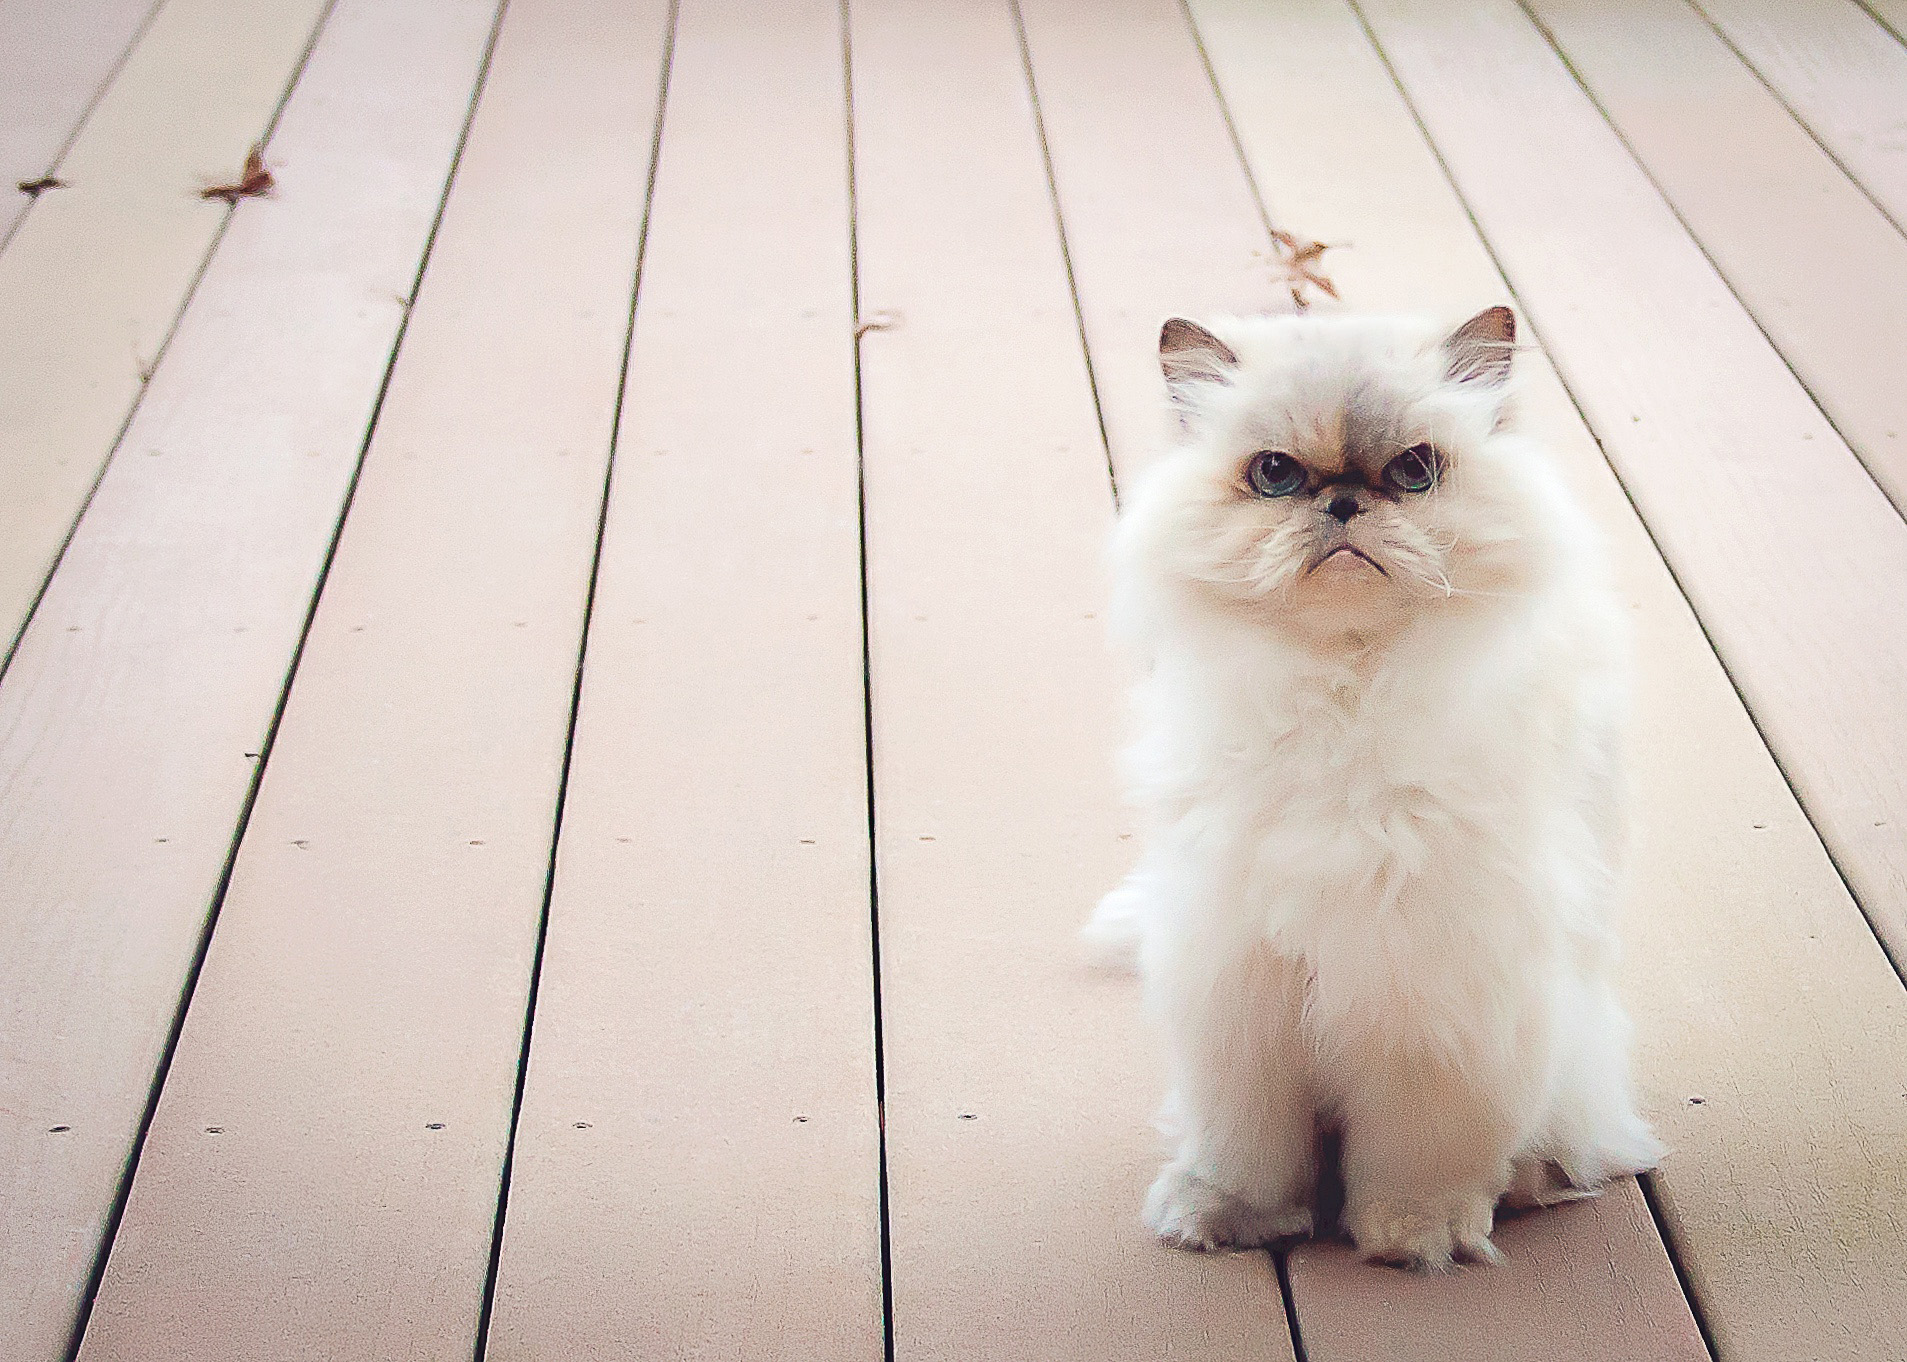 Owner Grateful for Care of Himalayan Cat's Chronic Kidney Disease